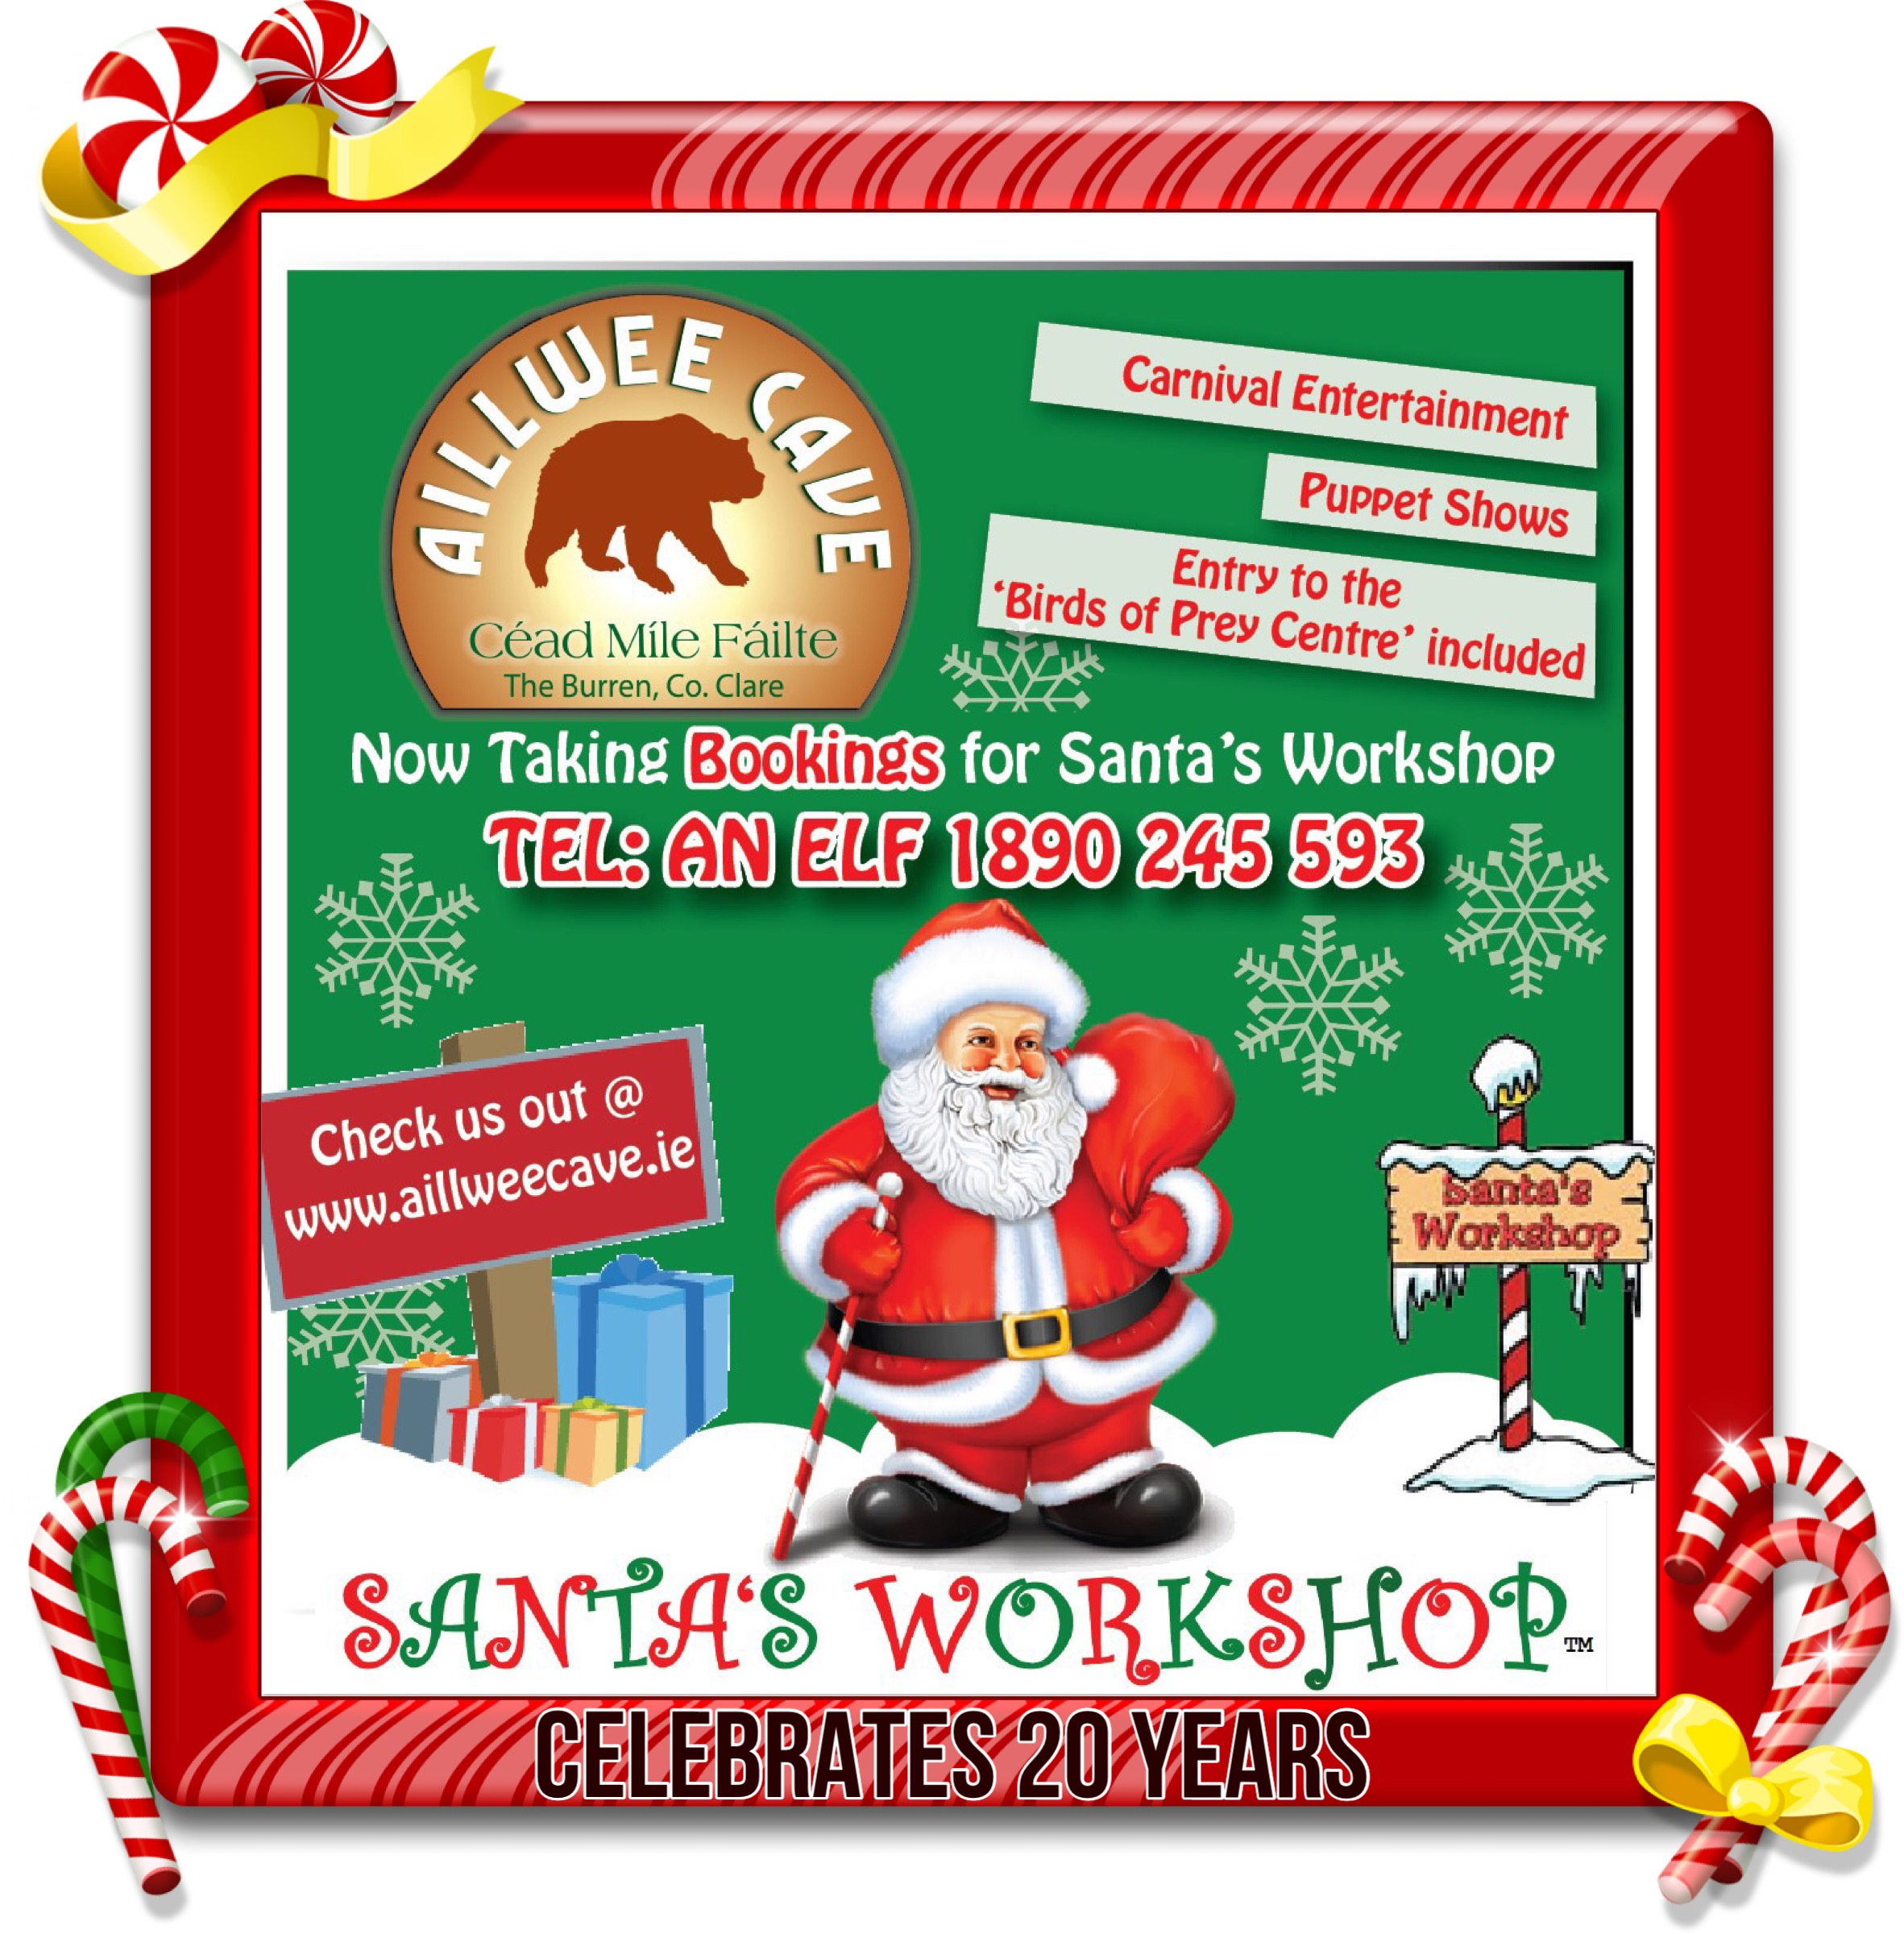 Santa's Workshop at Aillwee